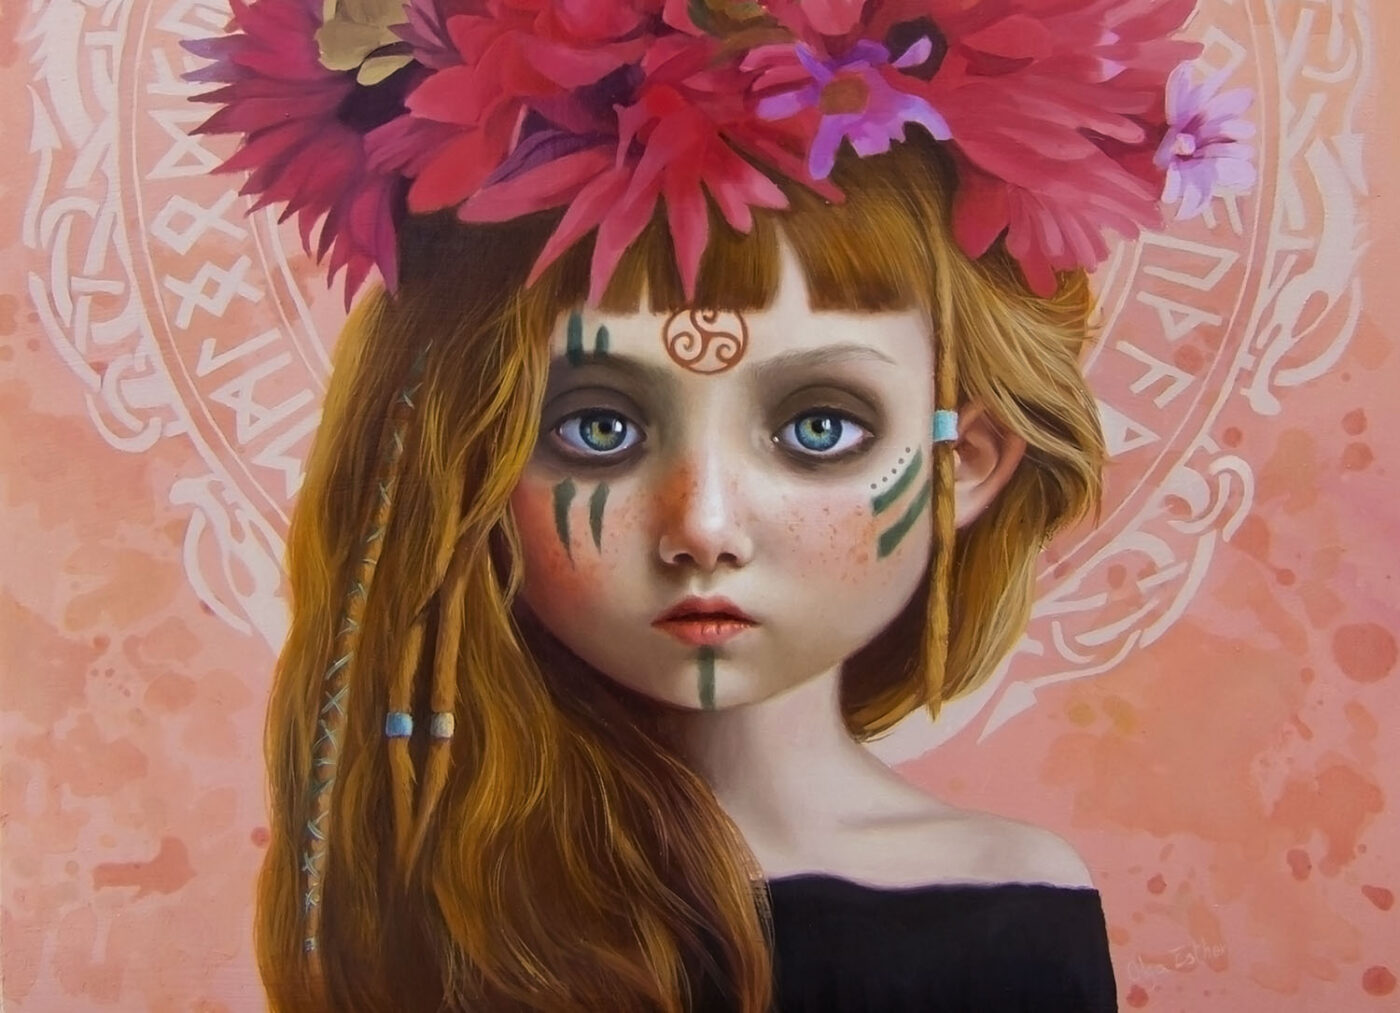 olga esther painting for the ritual art exhibition pop surrealism